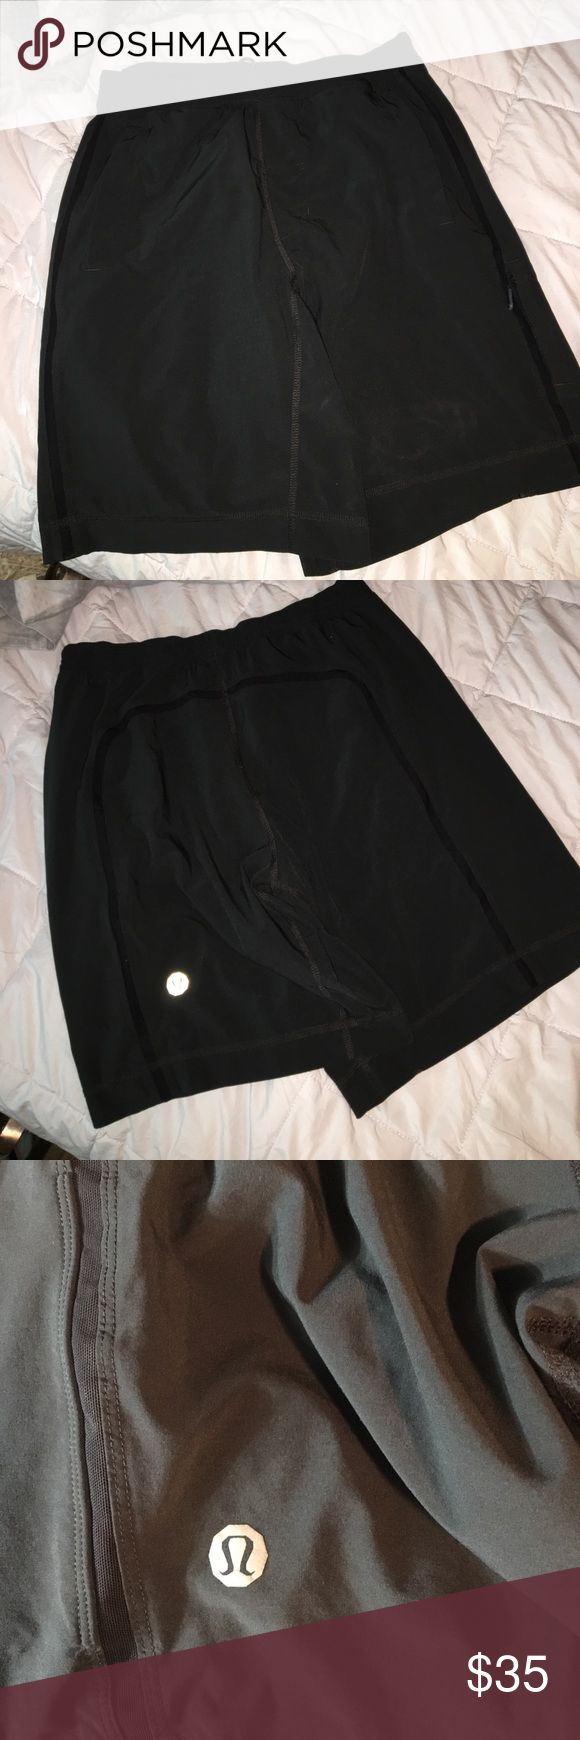 lululemon Men's Workout Shorts Excellent condition- no wearing at all. Drawstring waist, 2 open front pockets and one small zip on side! lululemon athletica Shorts Athletic